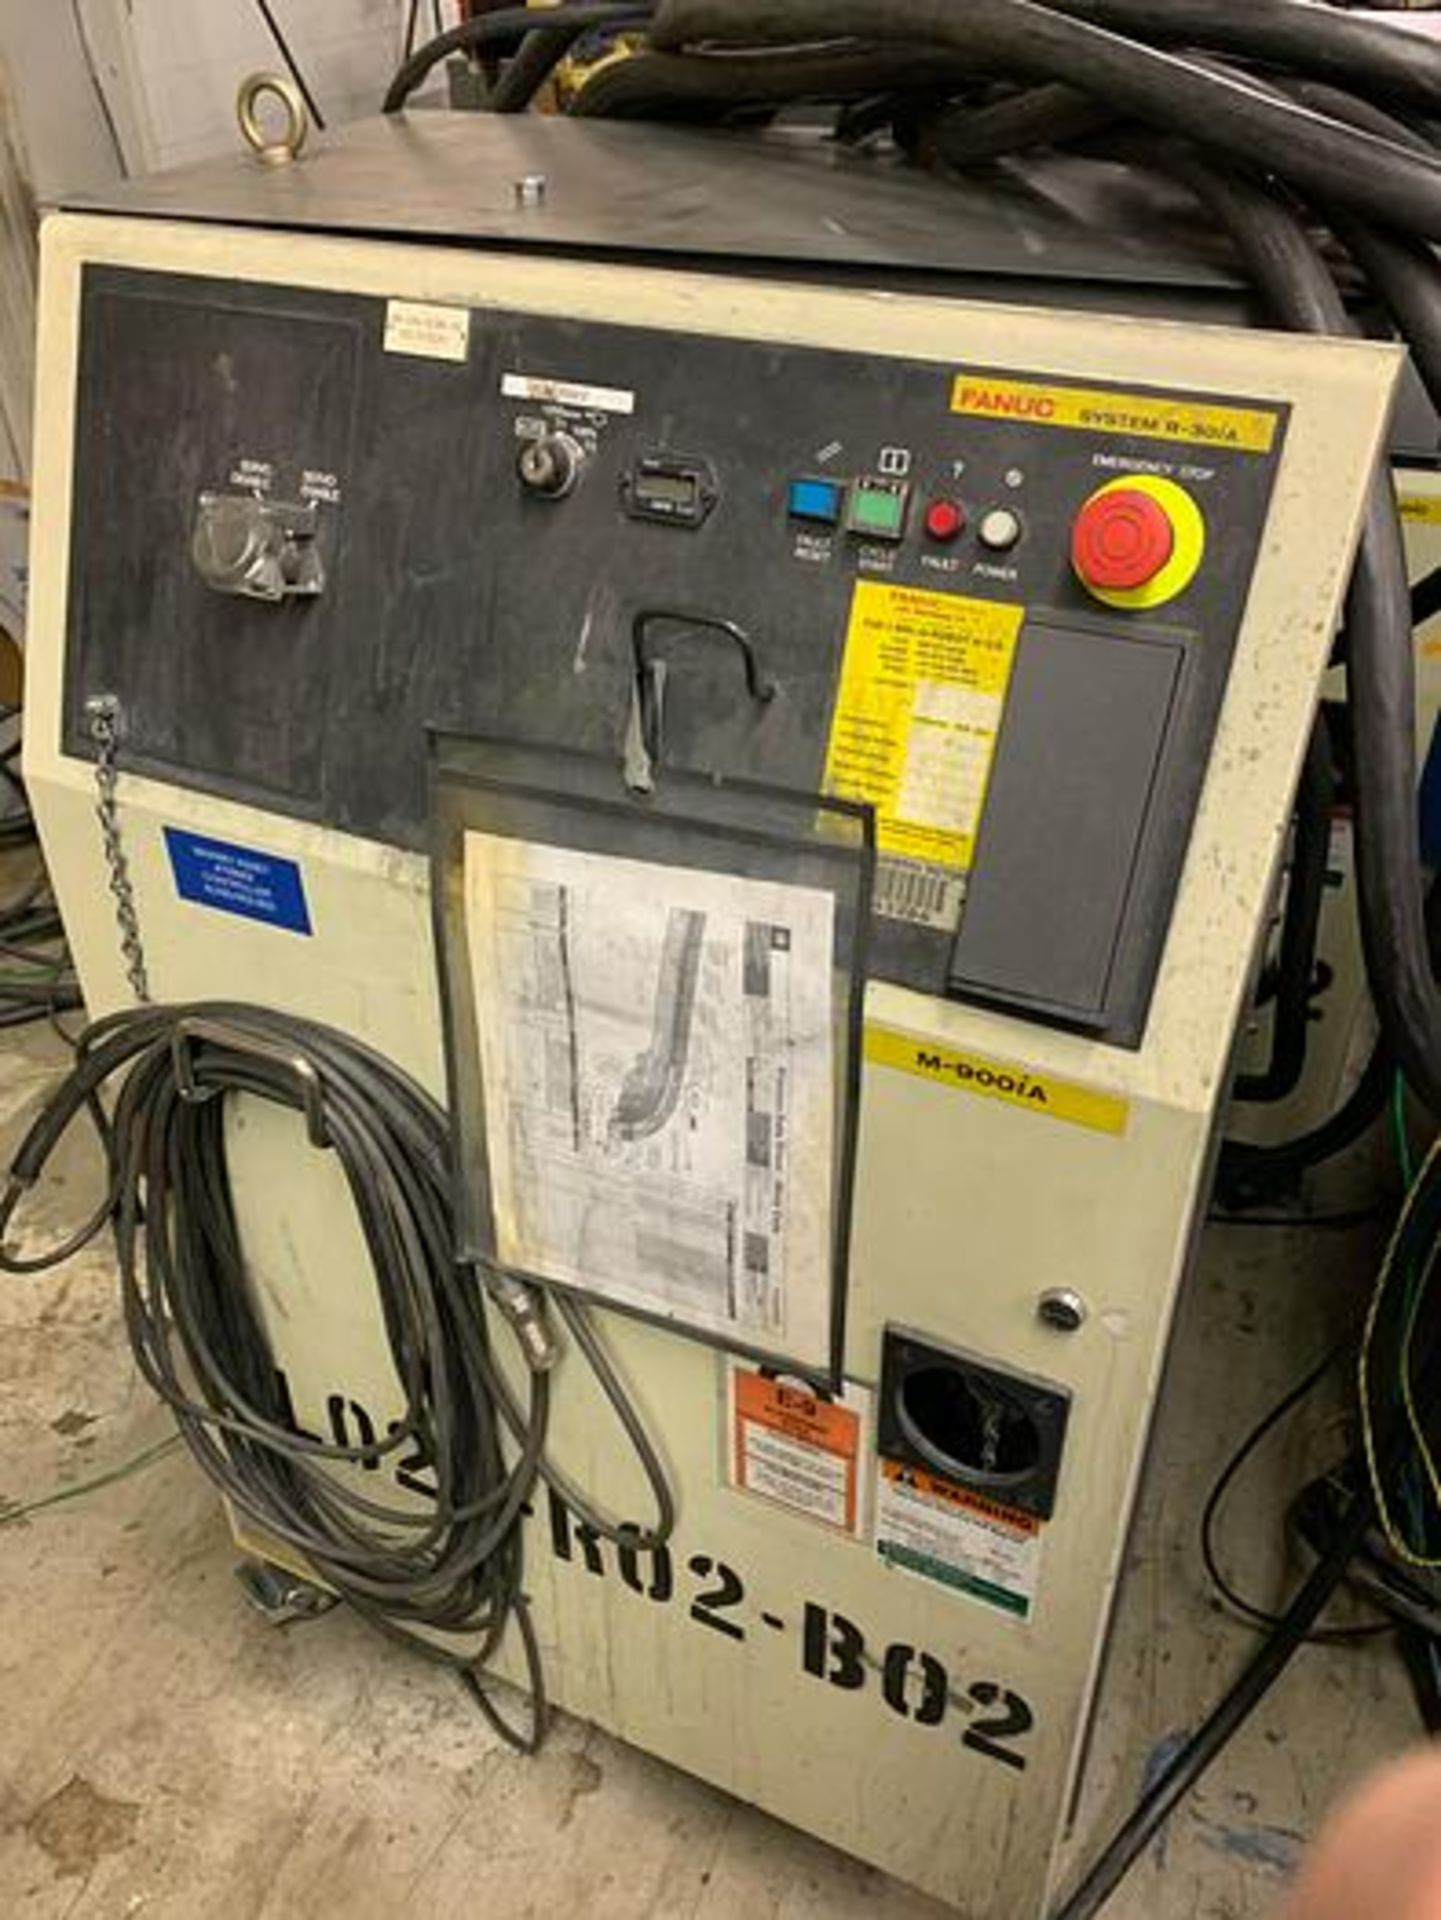 FANUC M900iA/350 6 AXIS ROBOT WITH R30iA CONTROLLER MACHINE, CABLES & TEACH SN F111634, YEAR 2011 - Image 6 of 13